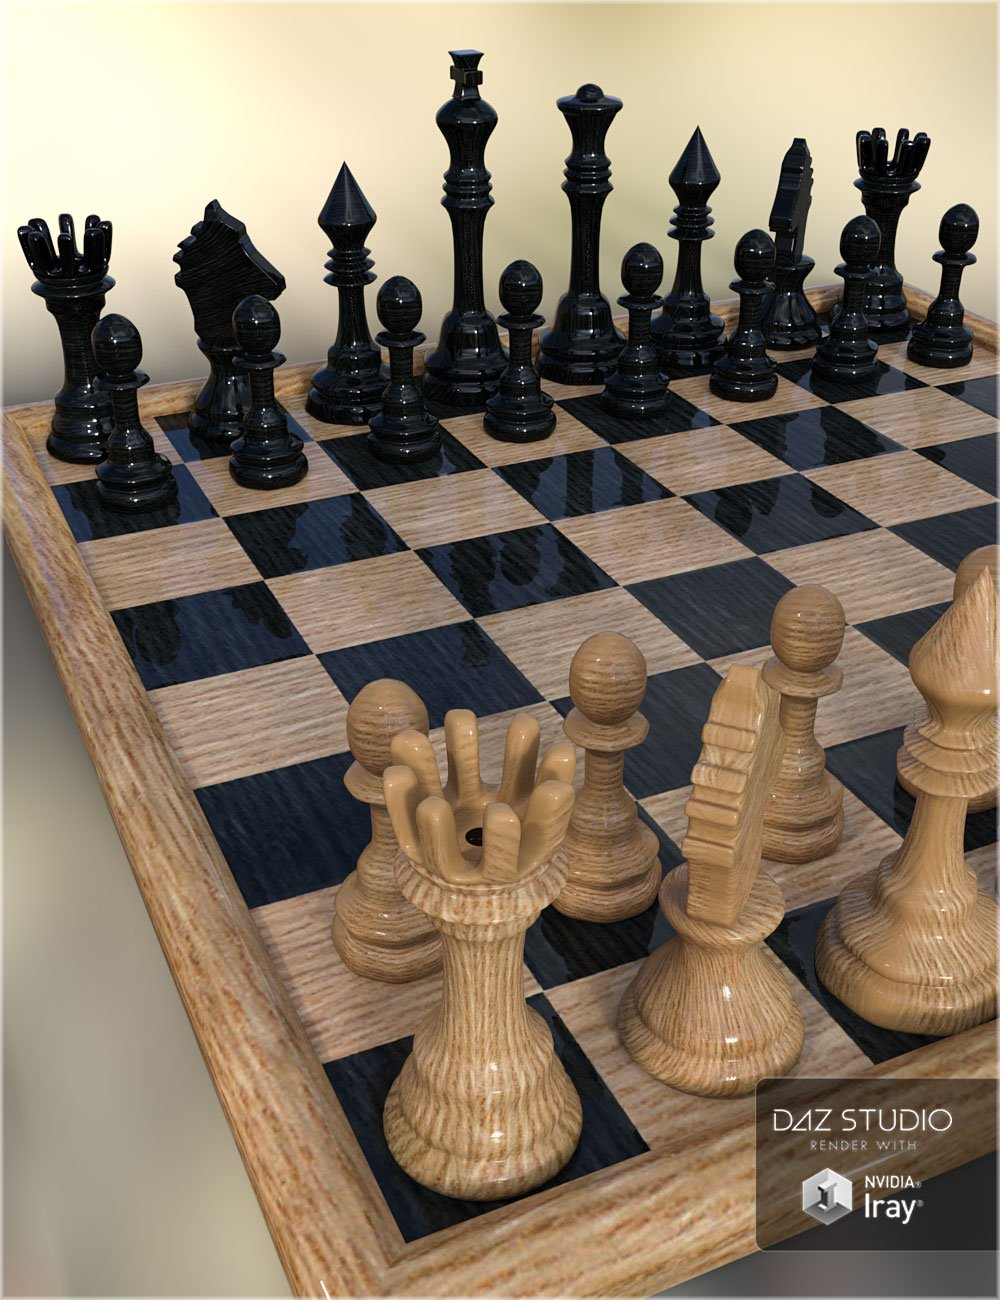 RW Classic Chess by: Renderwelten, 3D Models by Daz 3D